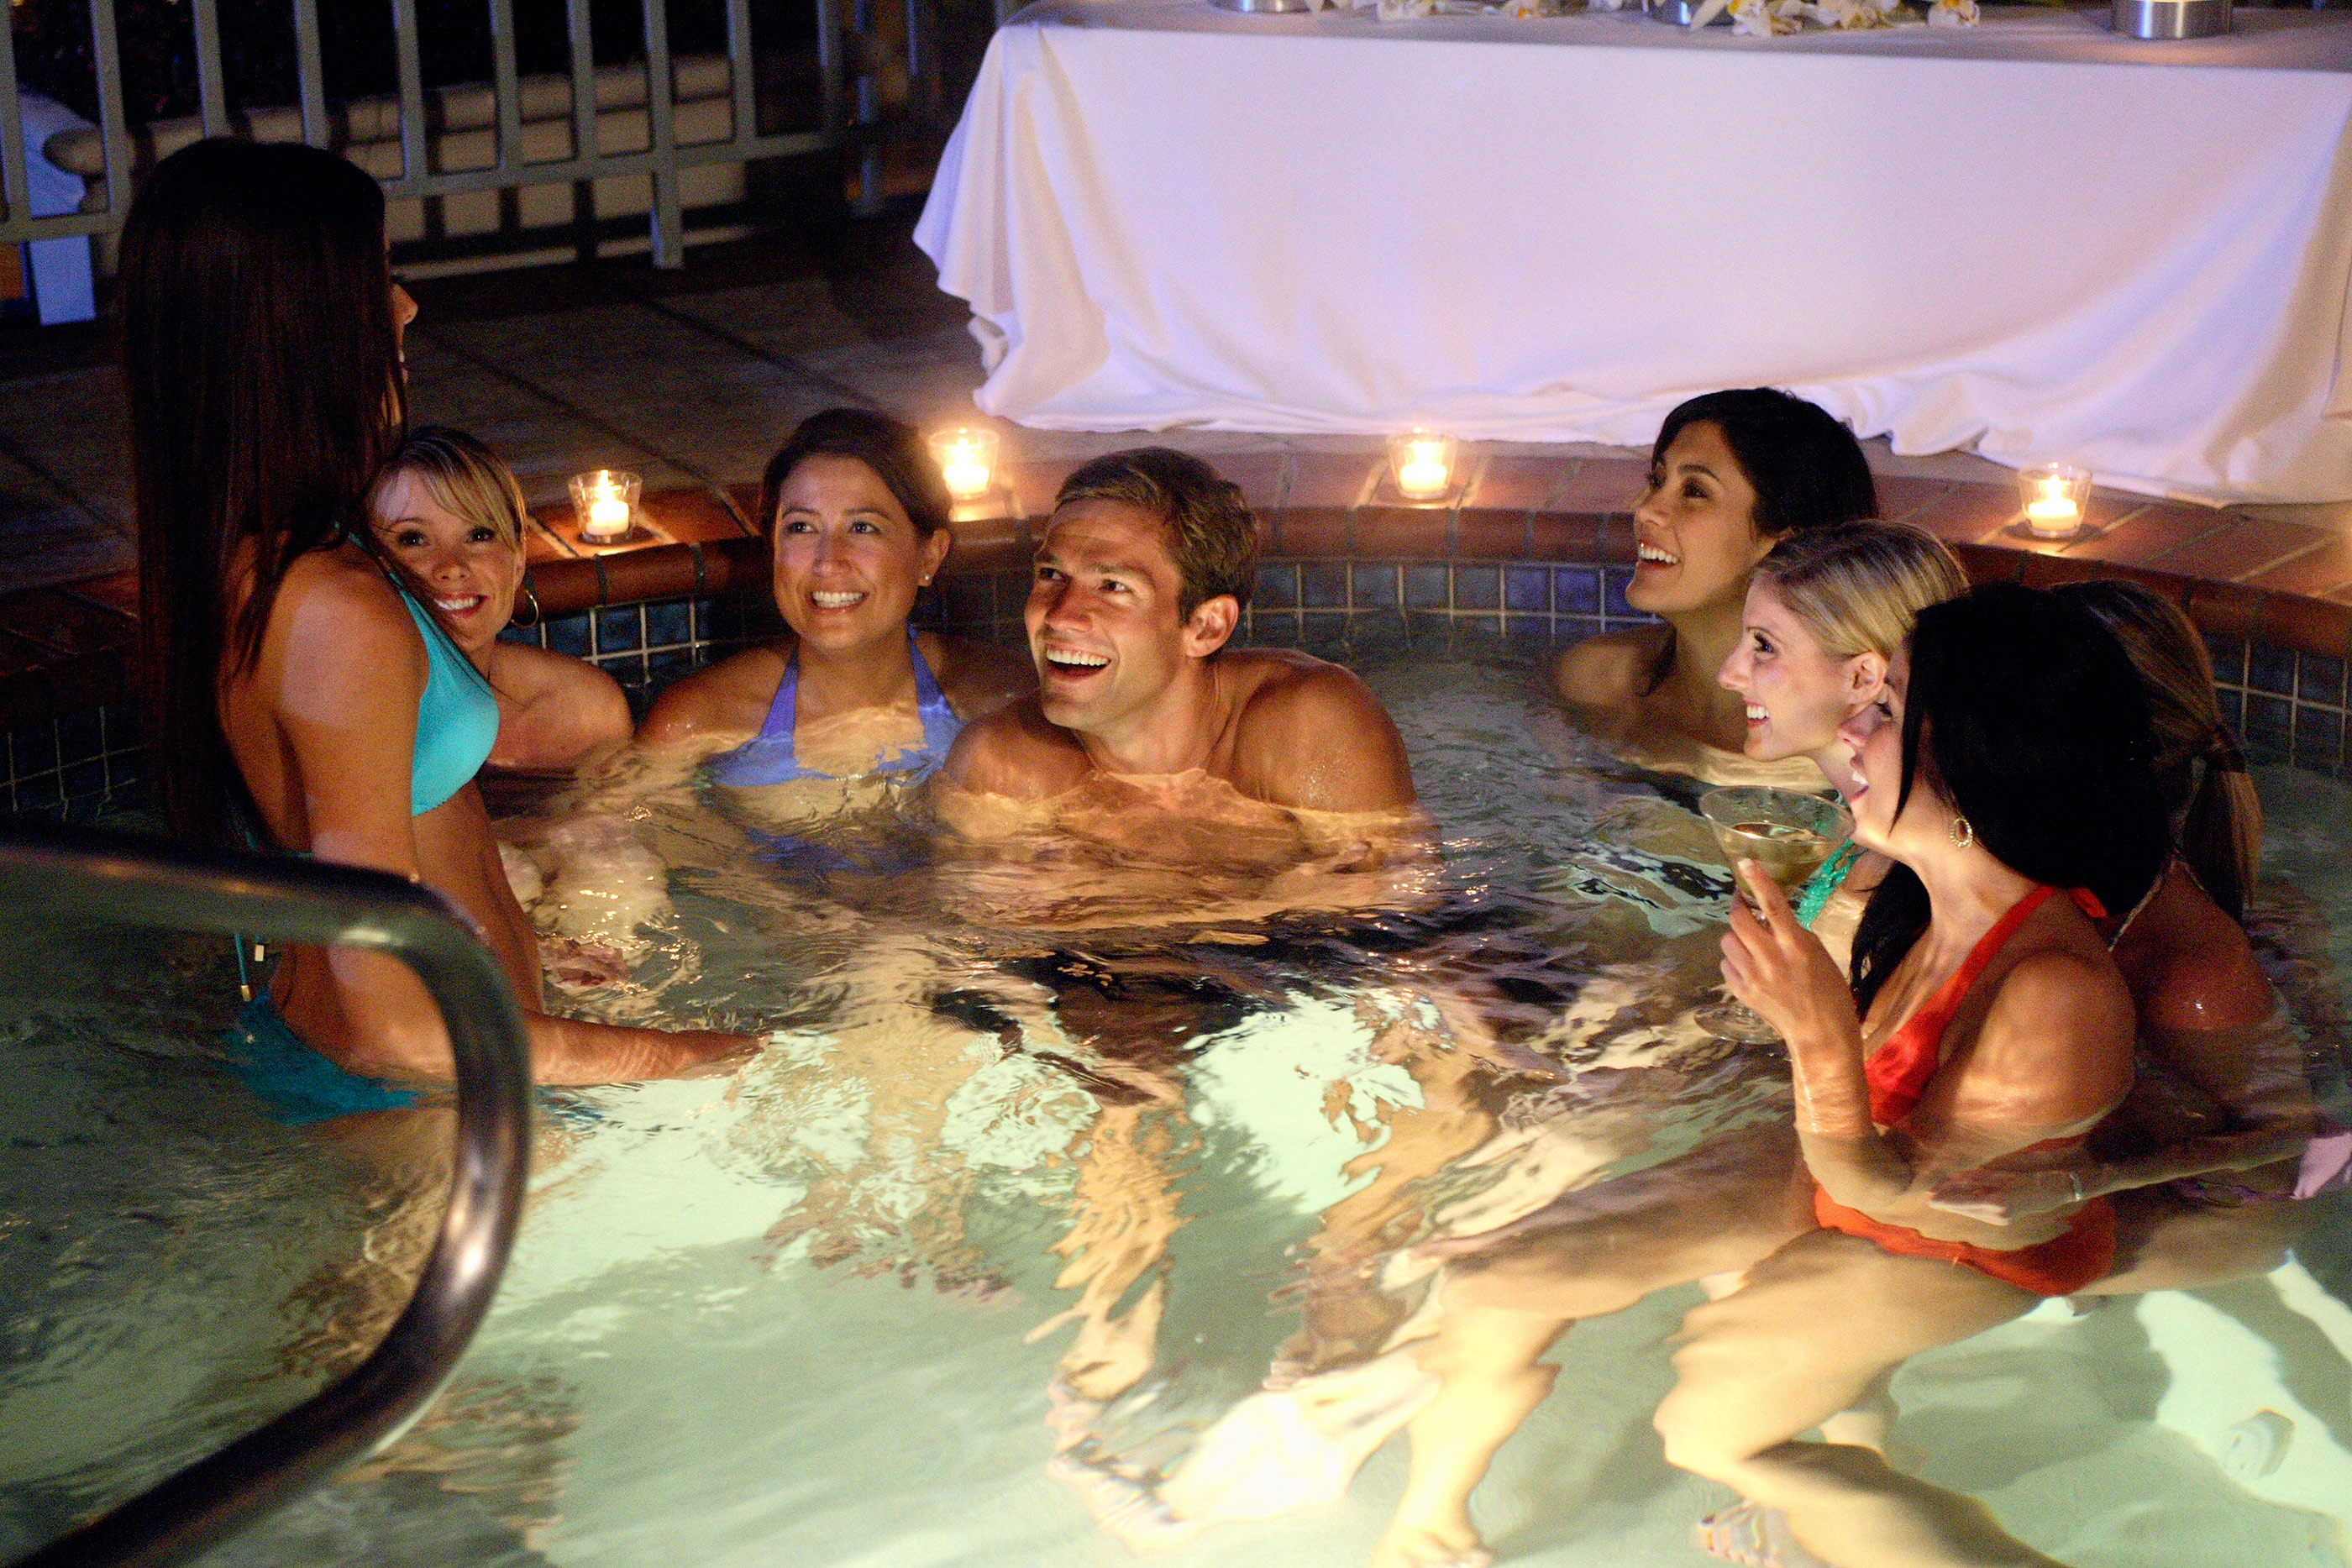 """THE BACHELOR: OFFICER AND A GENTLEMAN - """"Episode 1002"""" - As 15 bachelorettes settle into a mansion in the Hollywood Hills, the fairy tale begins. On his first group date, Andy and seven striking ladies take the Sunset Strip by storm with an evening of cocktails and bull riding that ends in the hot tub. Bevin can't handle the competition, becoming irritated, and seethes over perceived slights. Then one lucky bachelorette is singled out to spend a romantic evening aboard the Bachelor's private yacht, on """"The Bachelor: Officer and a Gentleman,"""" MONDAY, APRIL 9 (9:30-11:00 p.m., ET), on the ABC Television Network."""